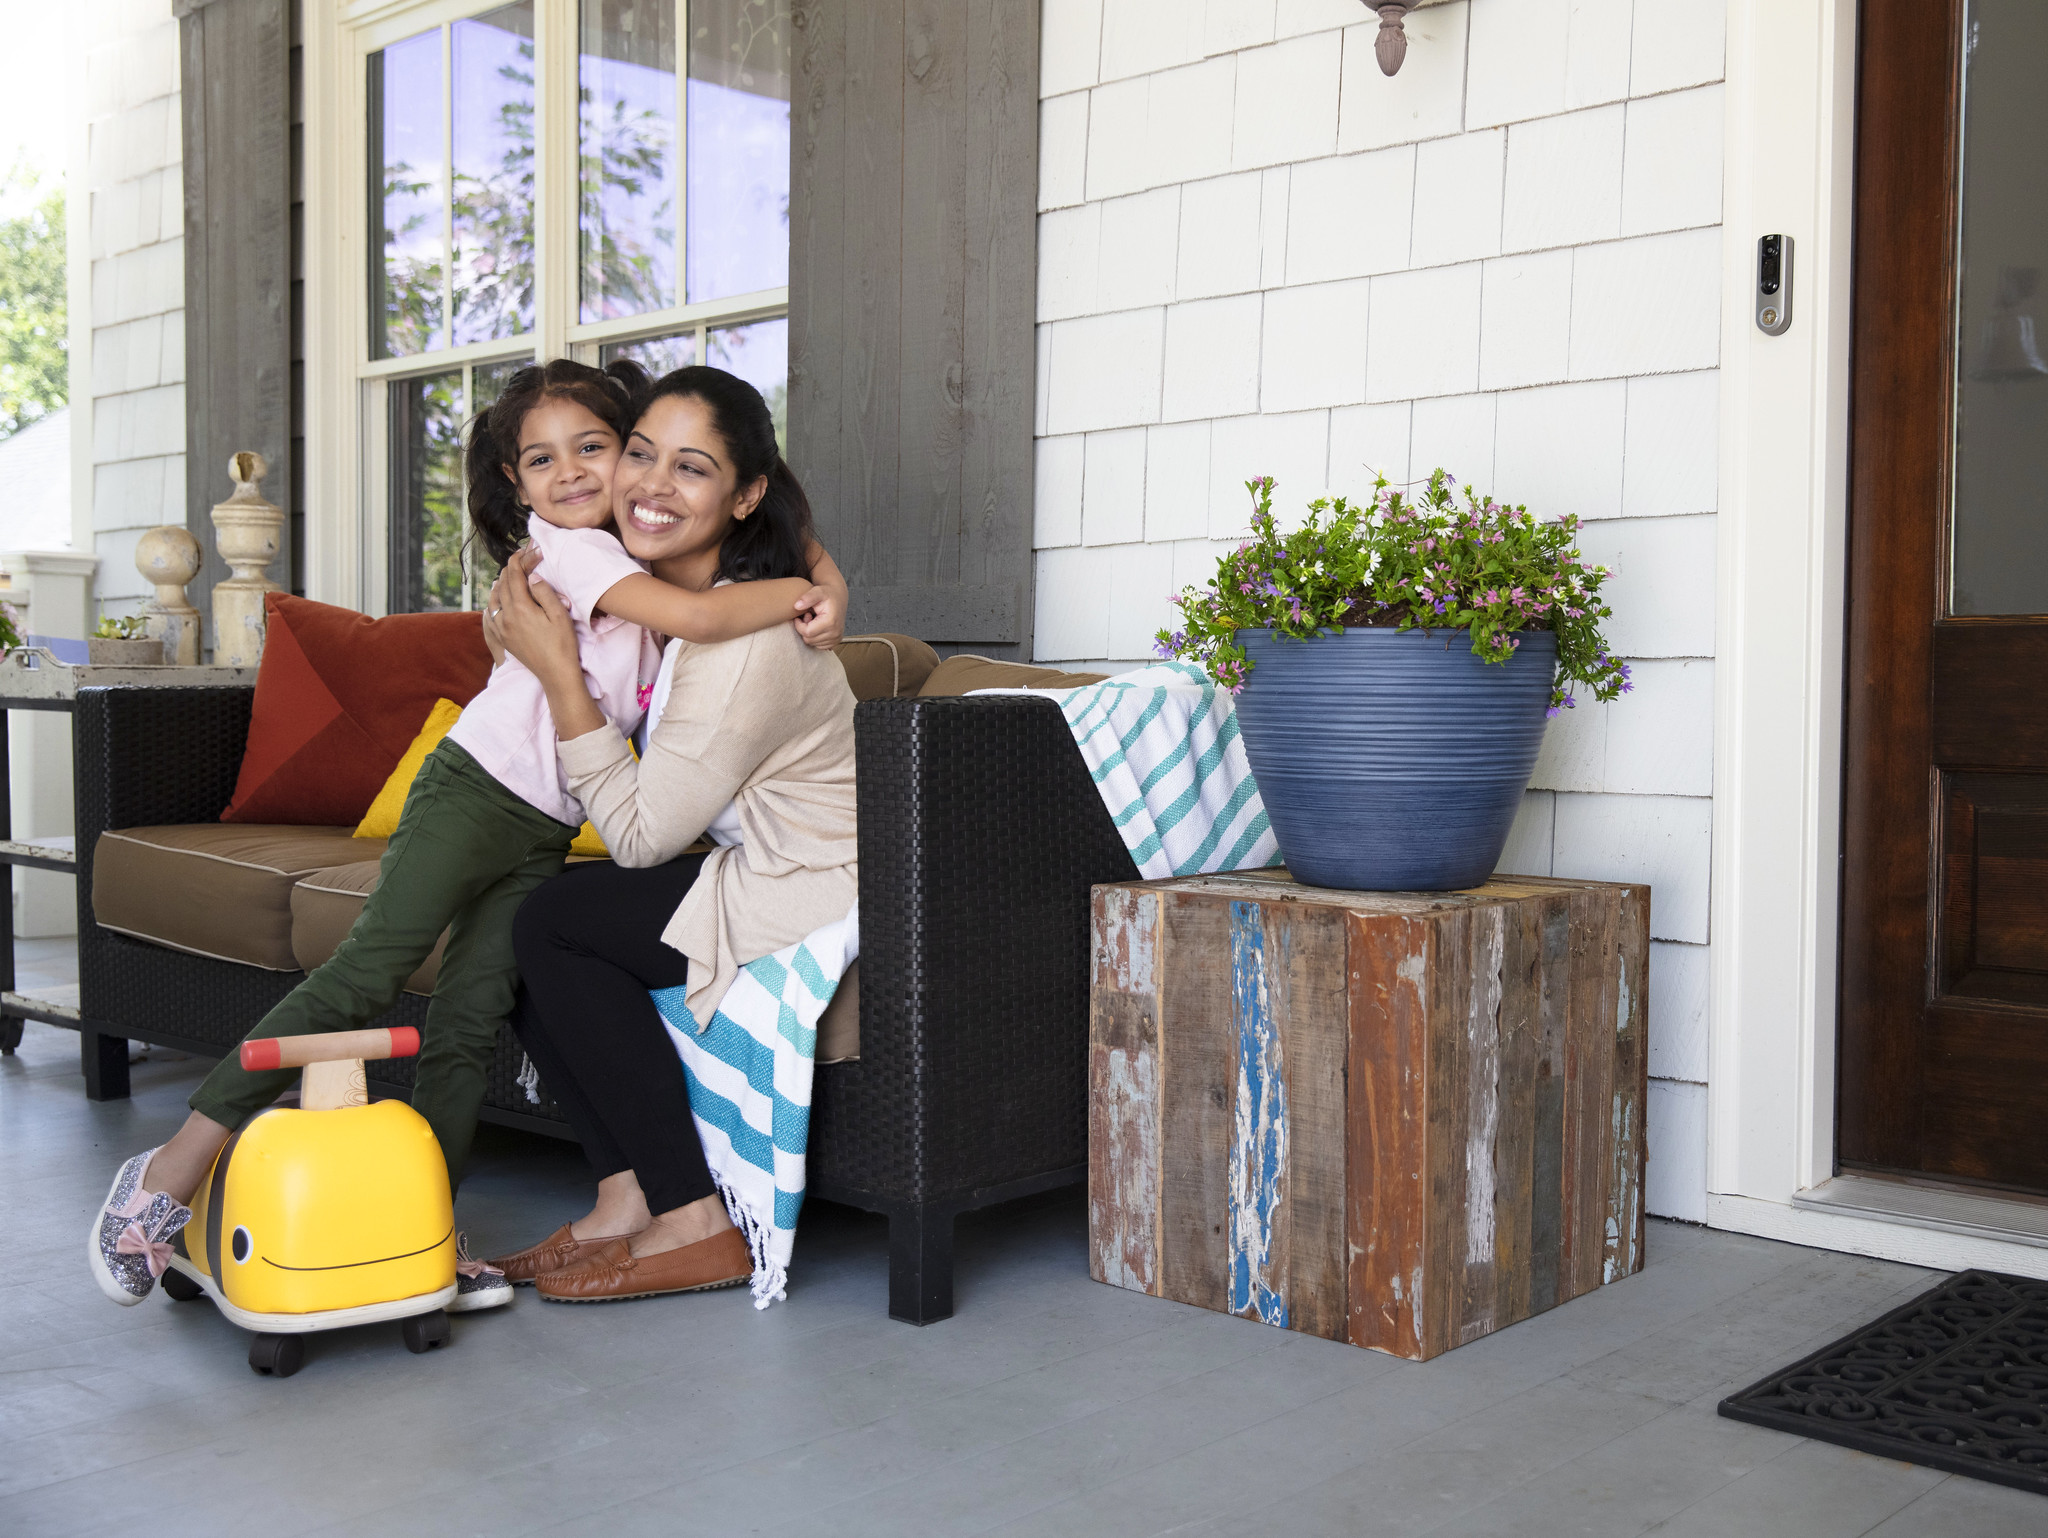 Front Porch with Smart Doorbell